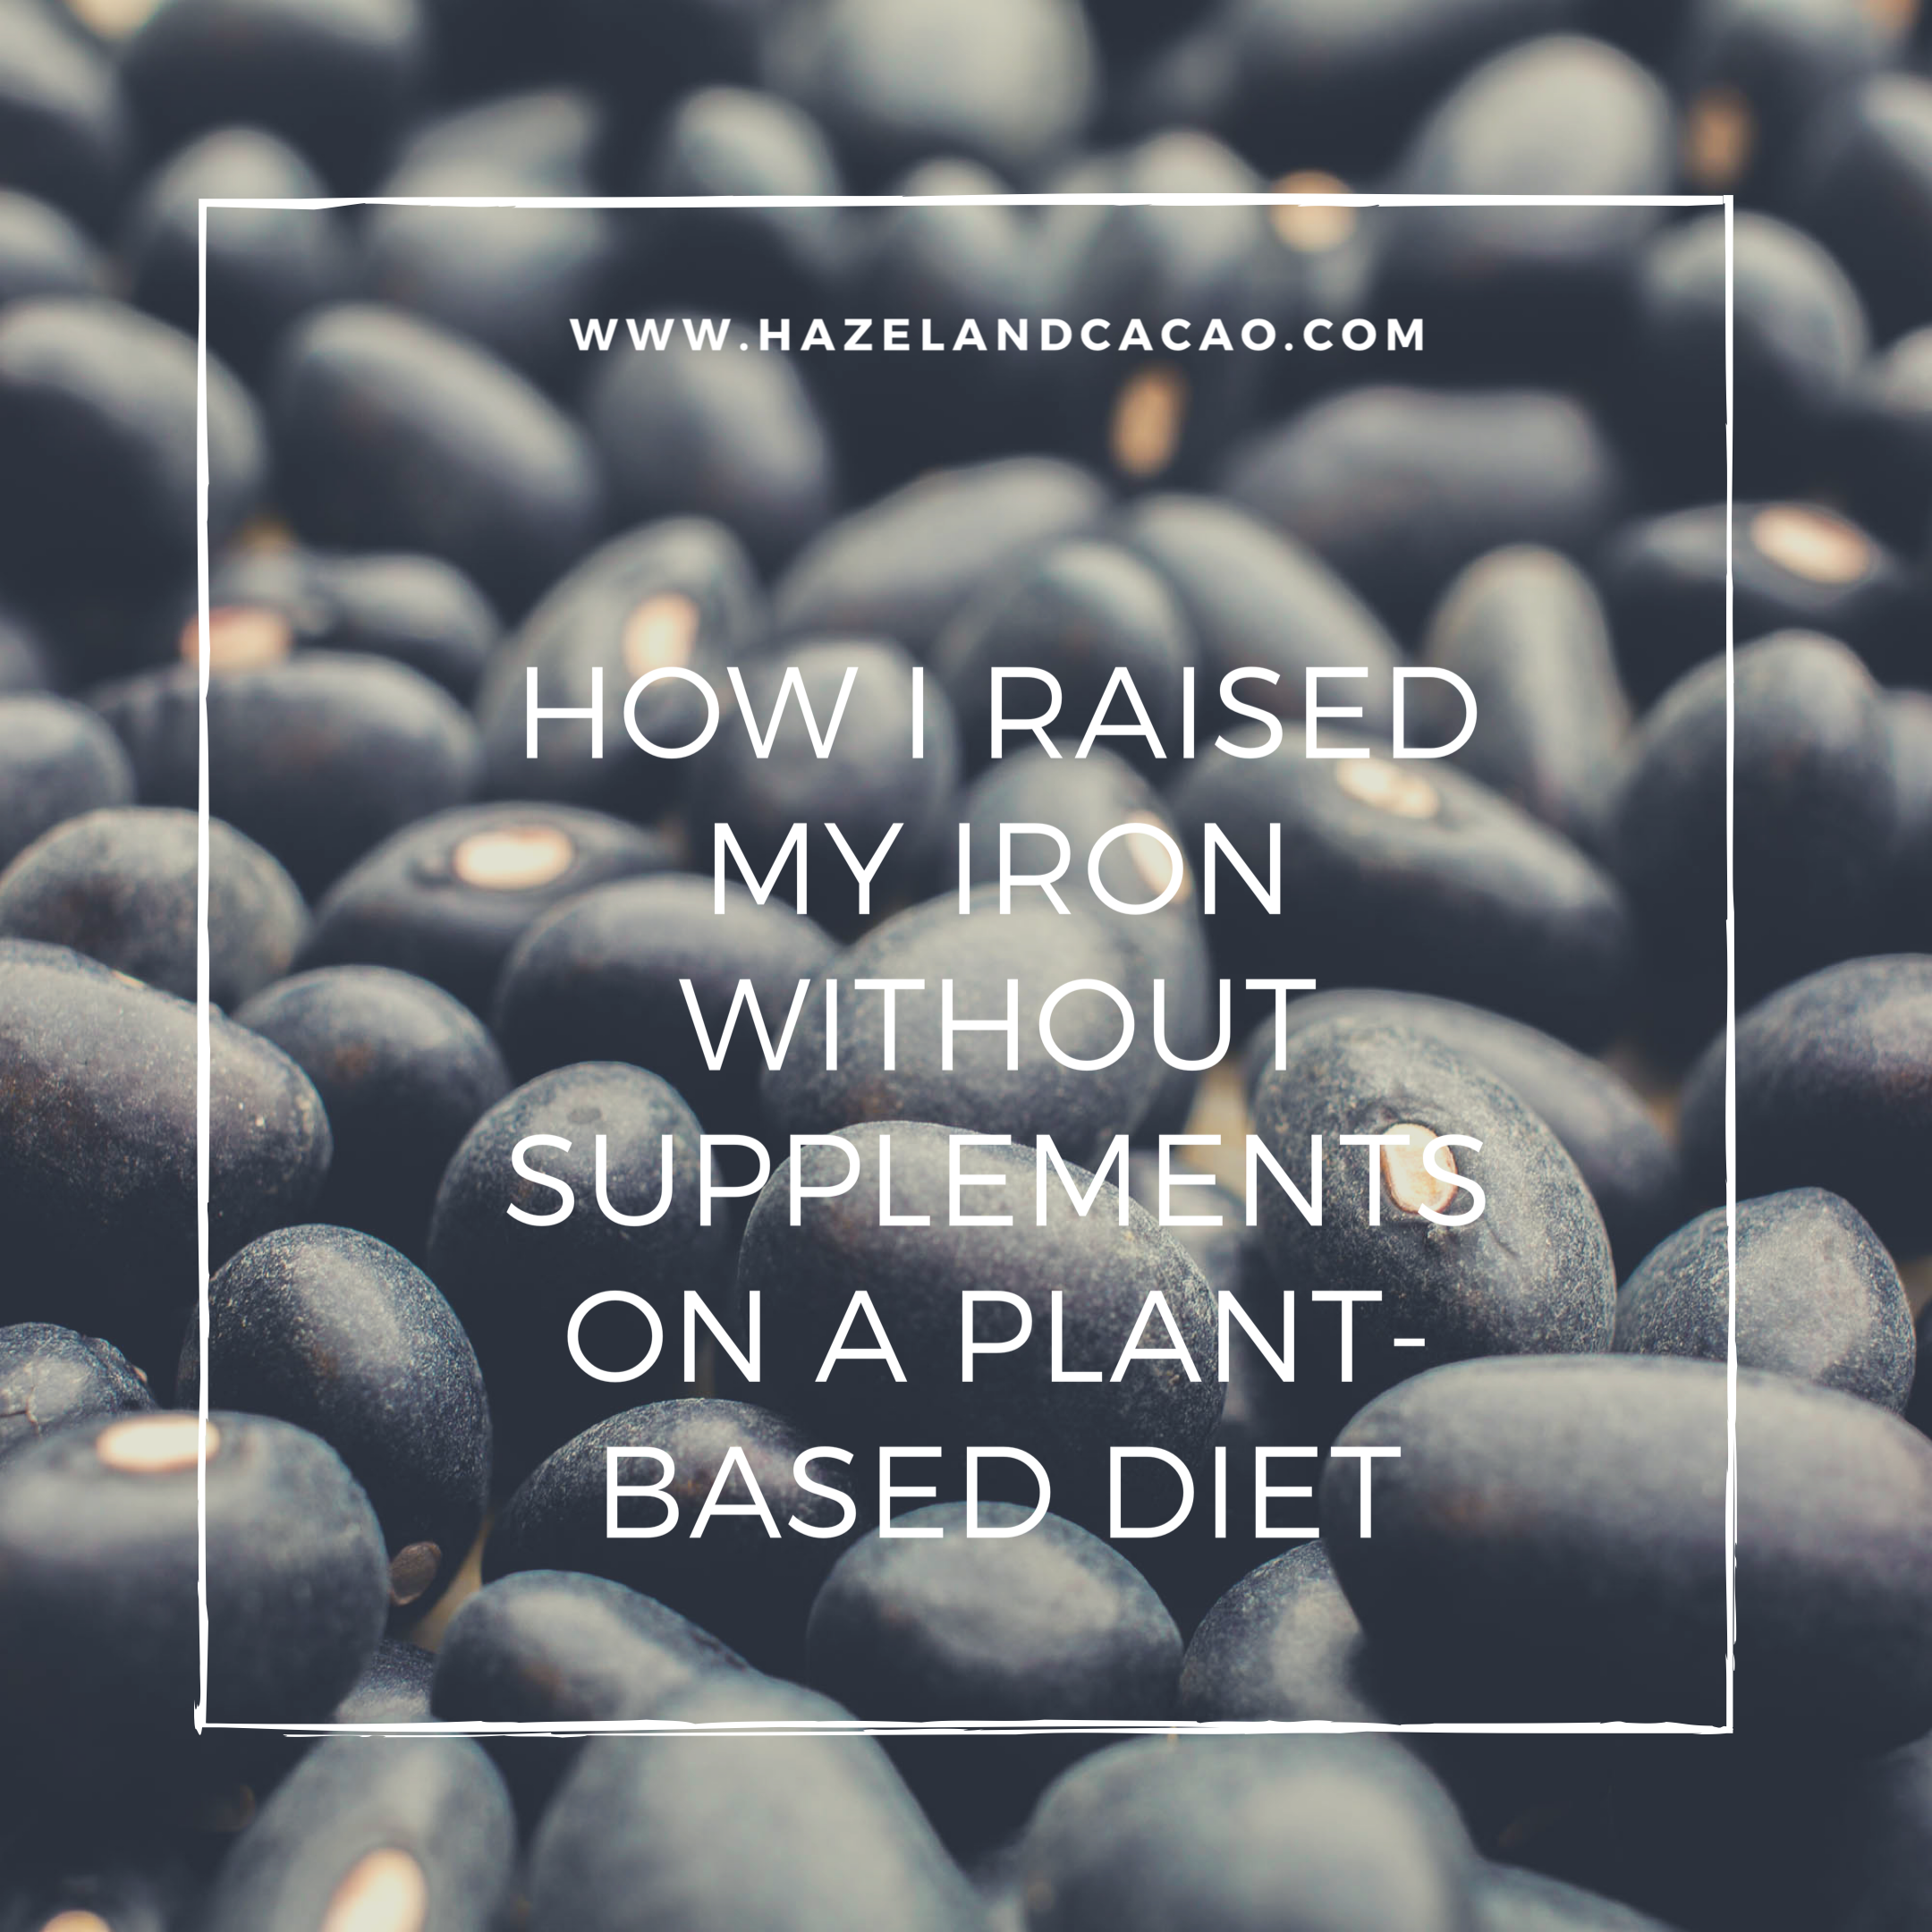 How I Raised My Low Iron Without Supplements on a Plant-based Diet